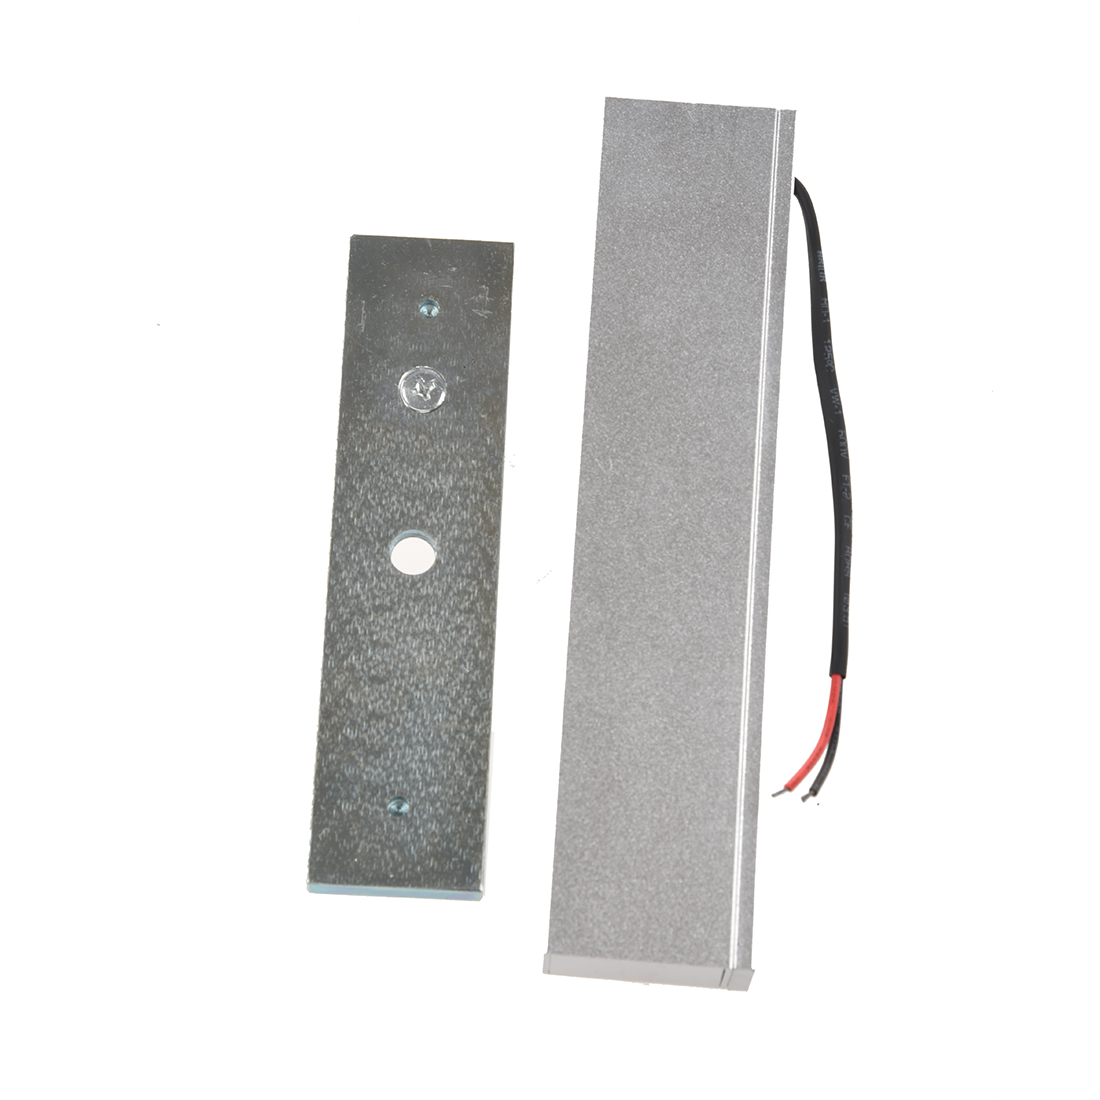 New Style Single Door 12V Electric Magnetic Electromagnetic Lock 180KG (350LB) Holding Force for Access Control silver title hbwrf 180 lb